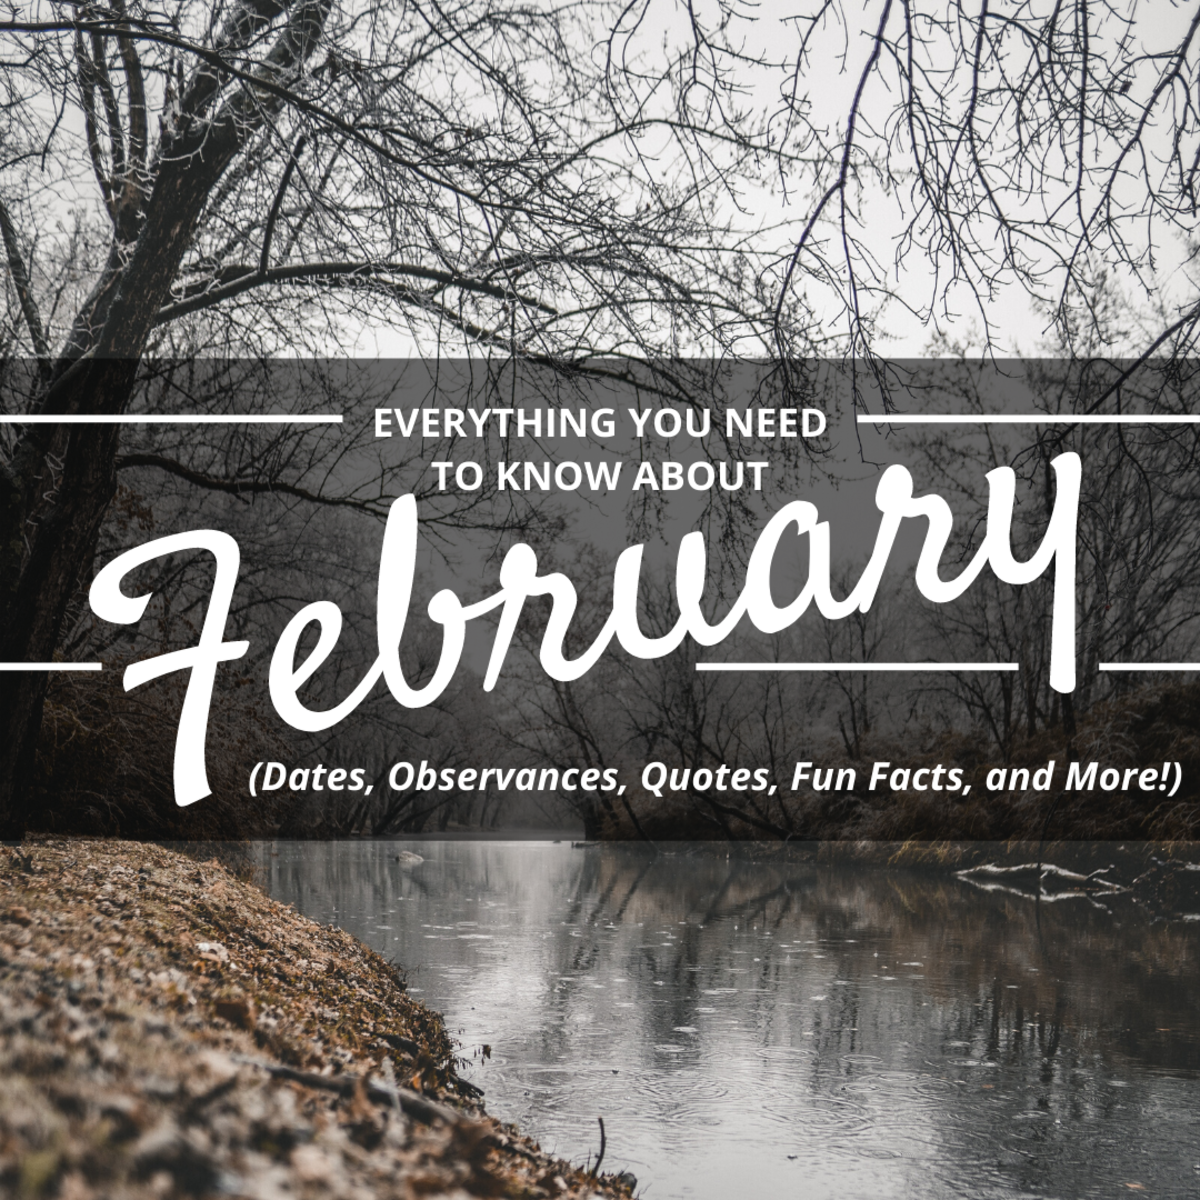 February Quotes, Sayings, Poems, Observances, and Fun Facts